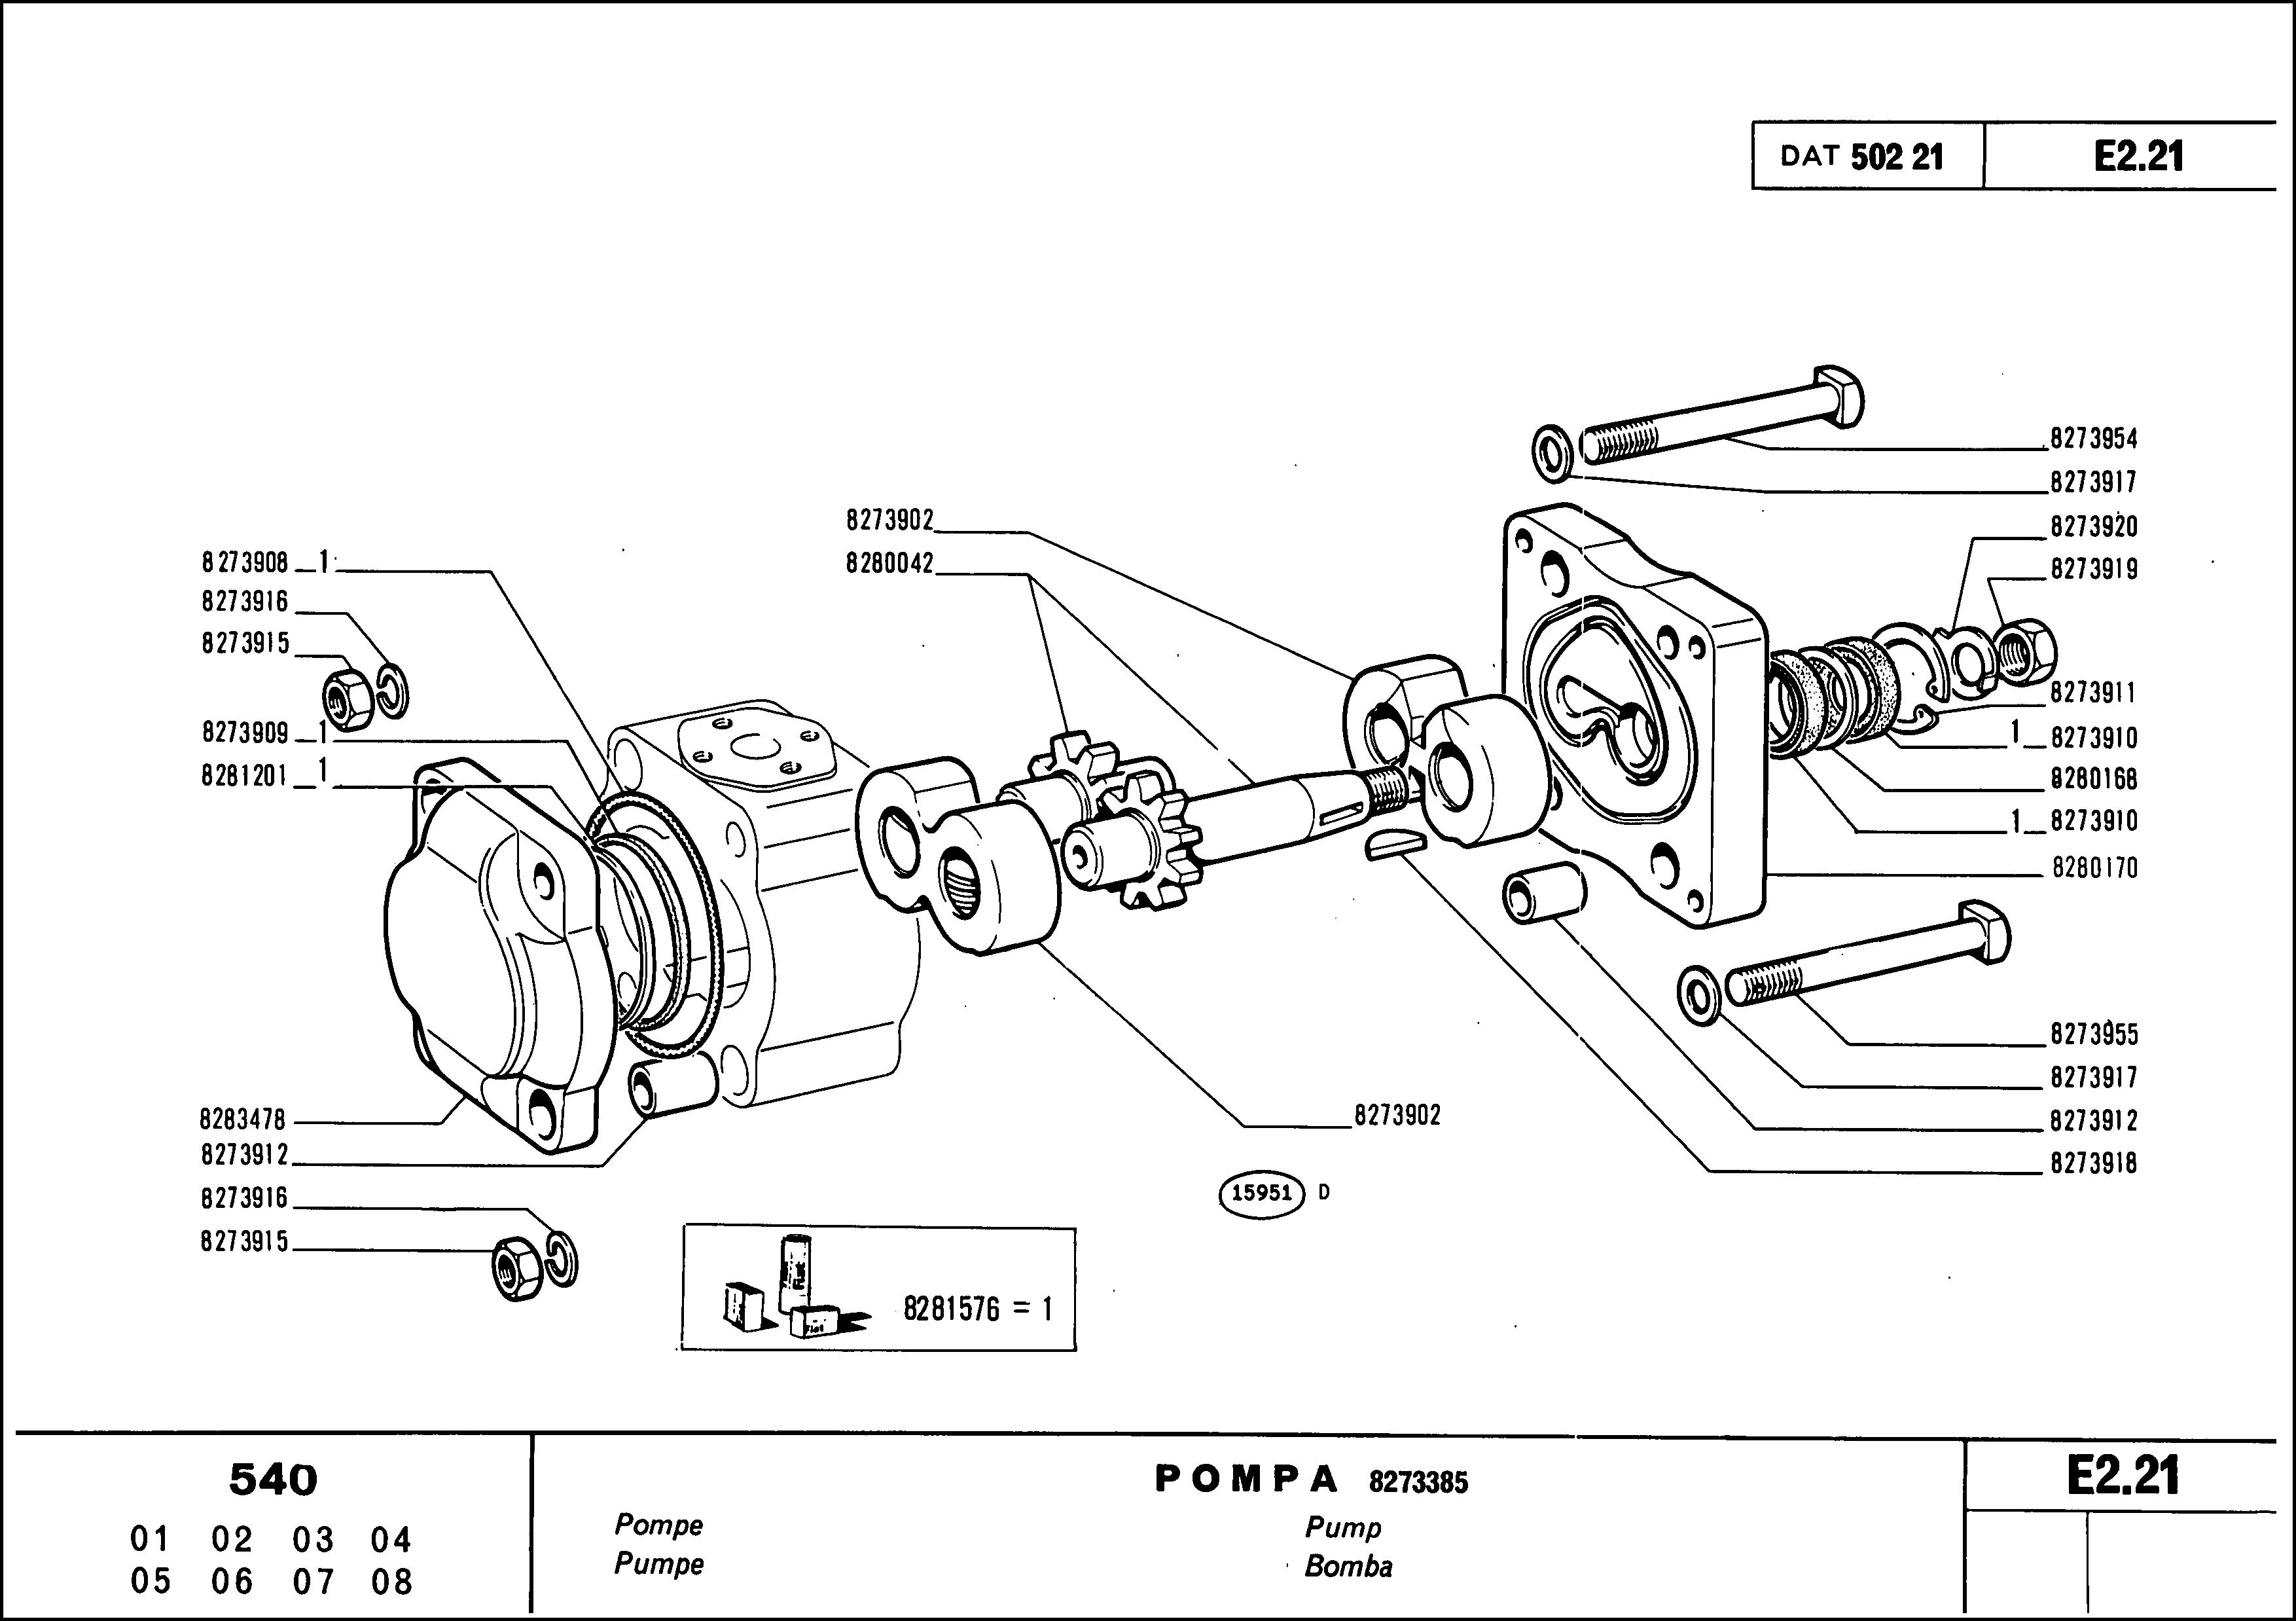 Download now this parts manual because is a complete